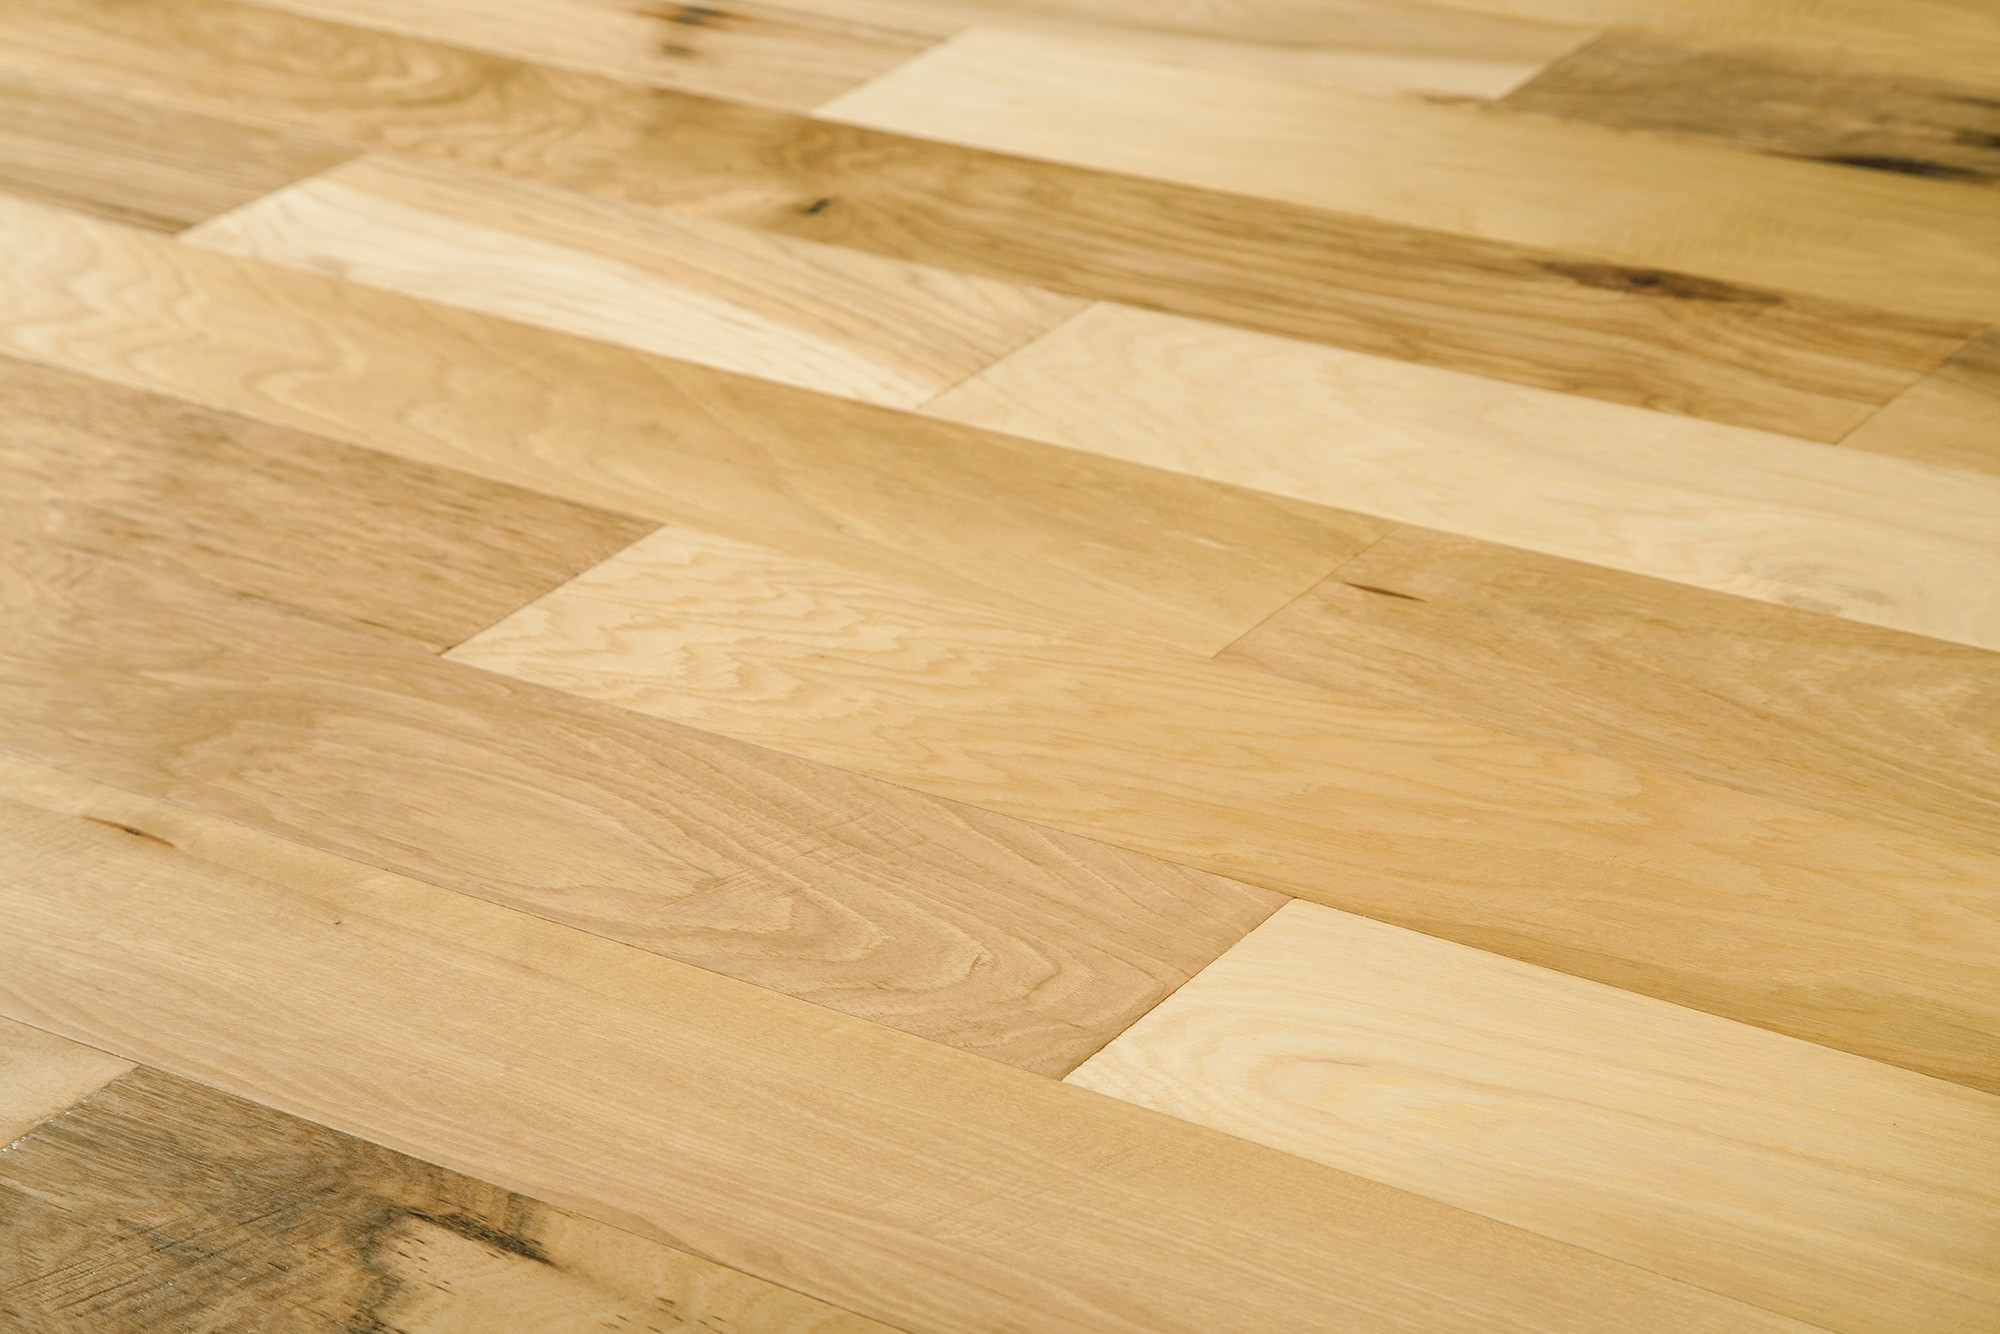 Clean Hardwood Floors with Vinegar